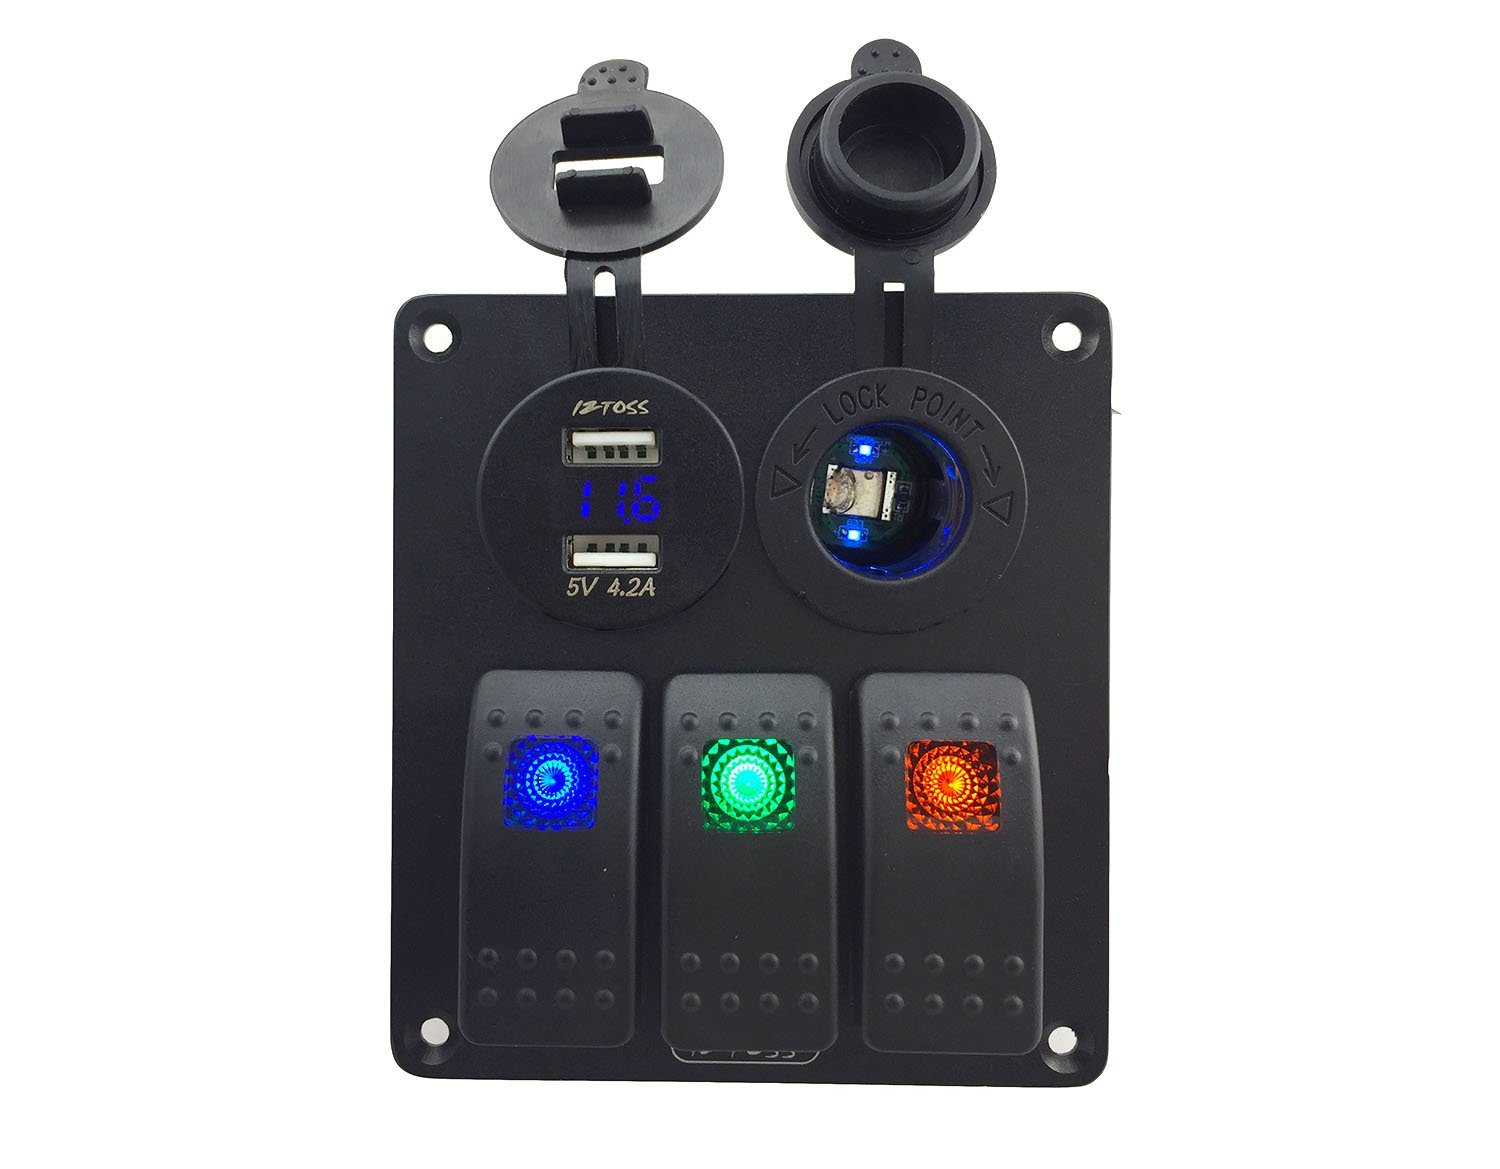 IZTOSS led 3 gang DC12V/24V switch panel with led power socket 4.2A dual USB voltmeter and wiring kits